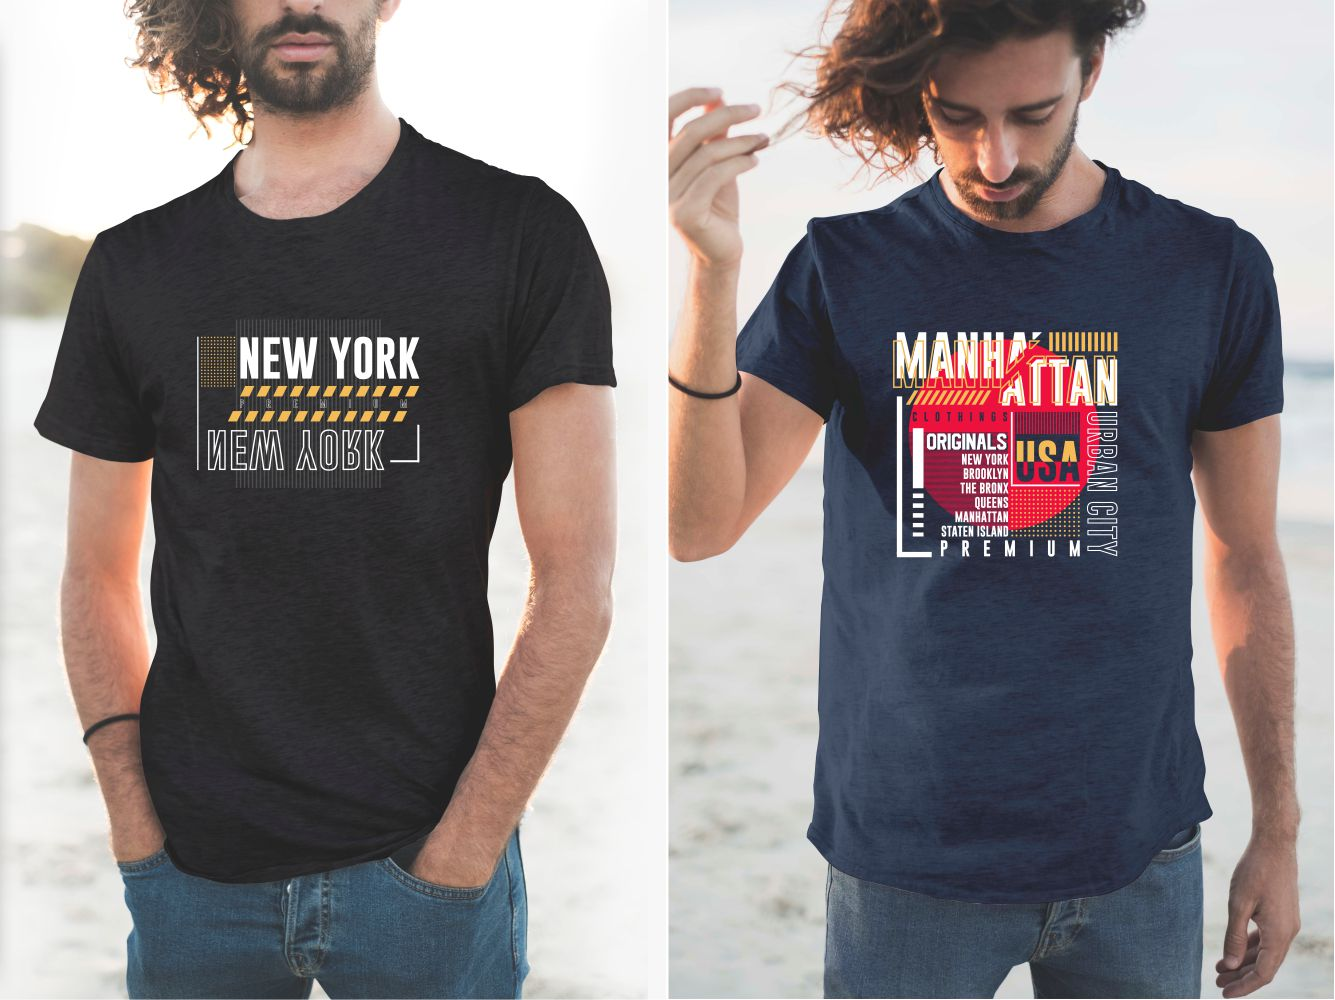 T-shirts with a picturesque graphic element about New York.